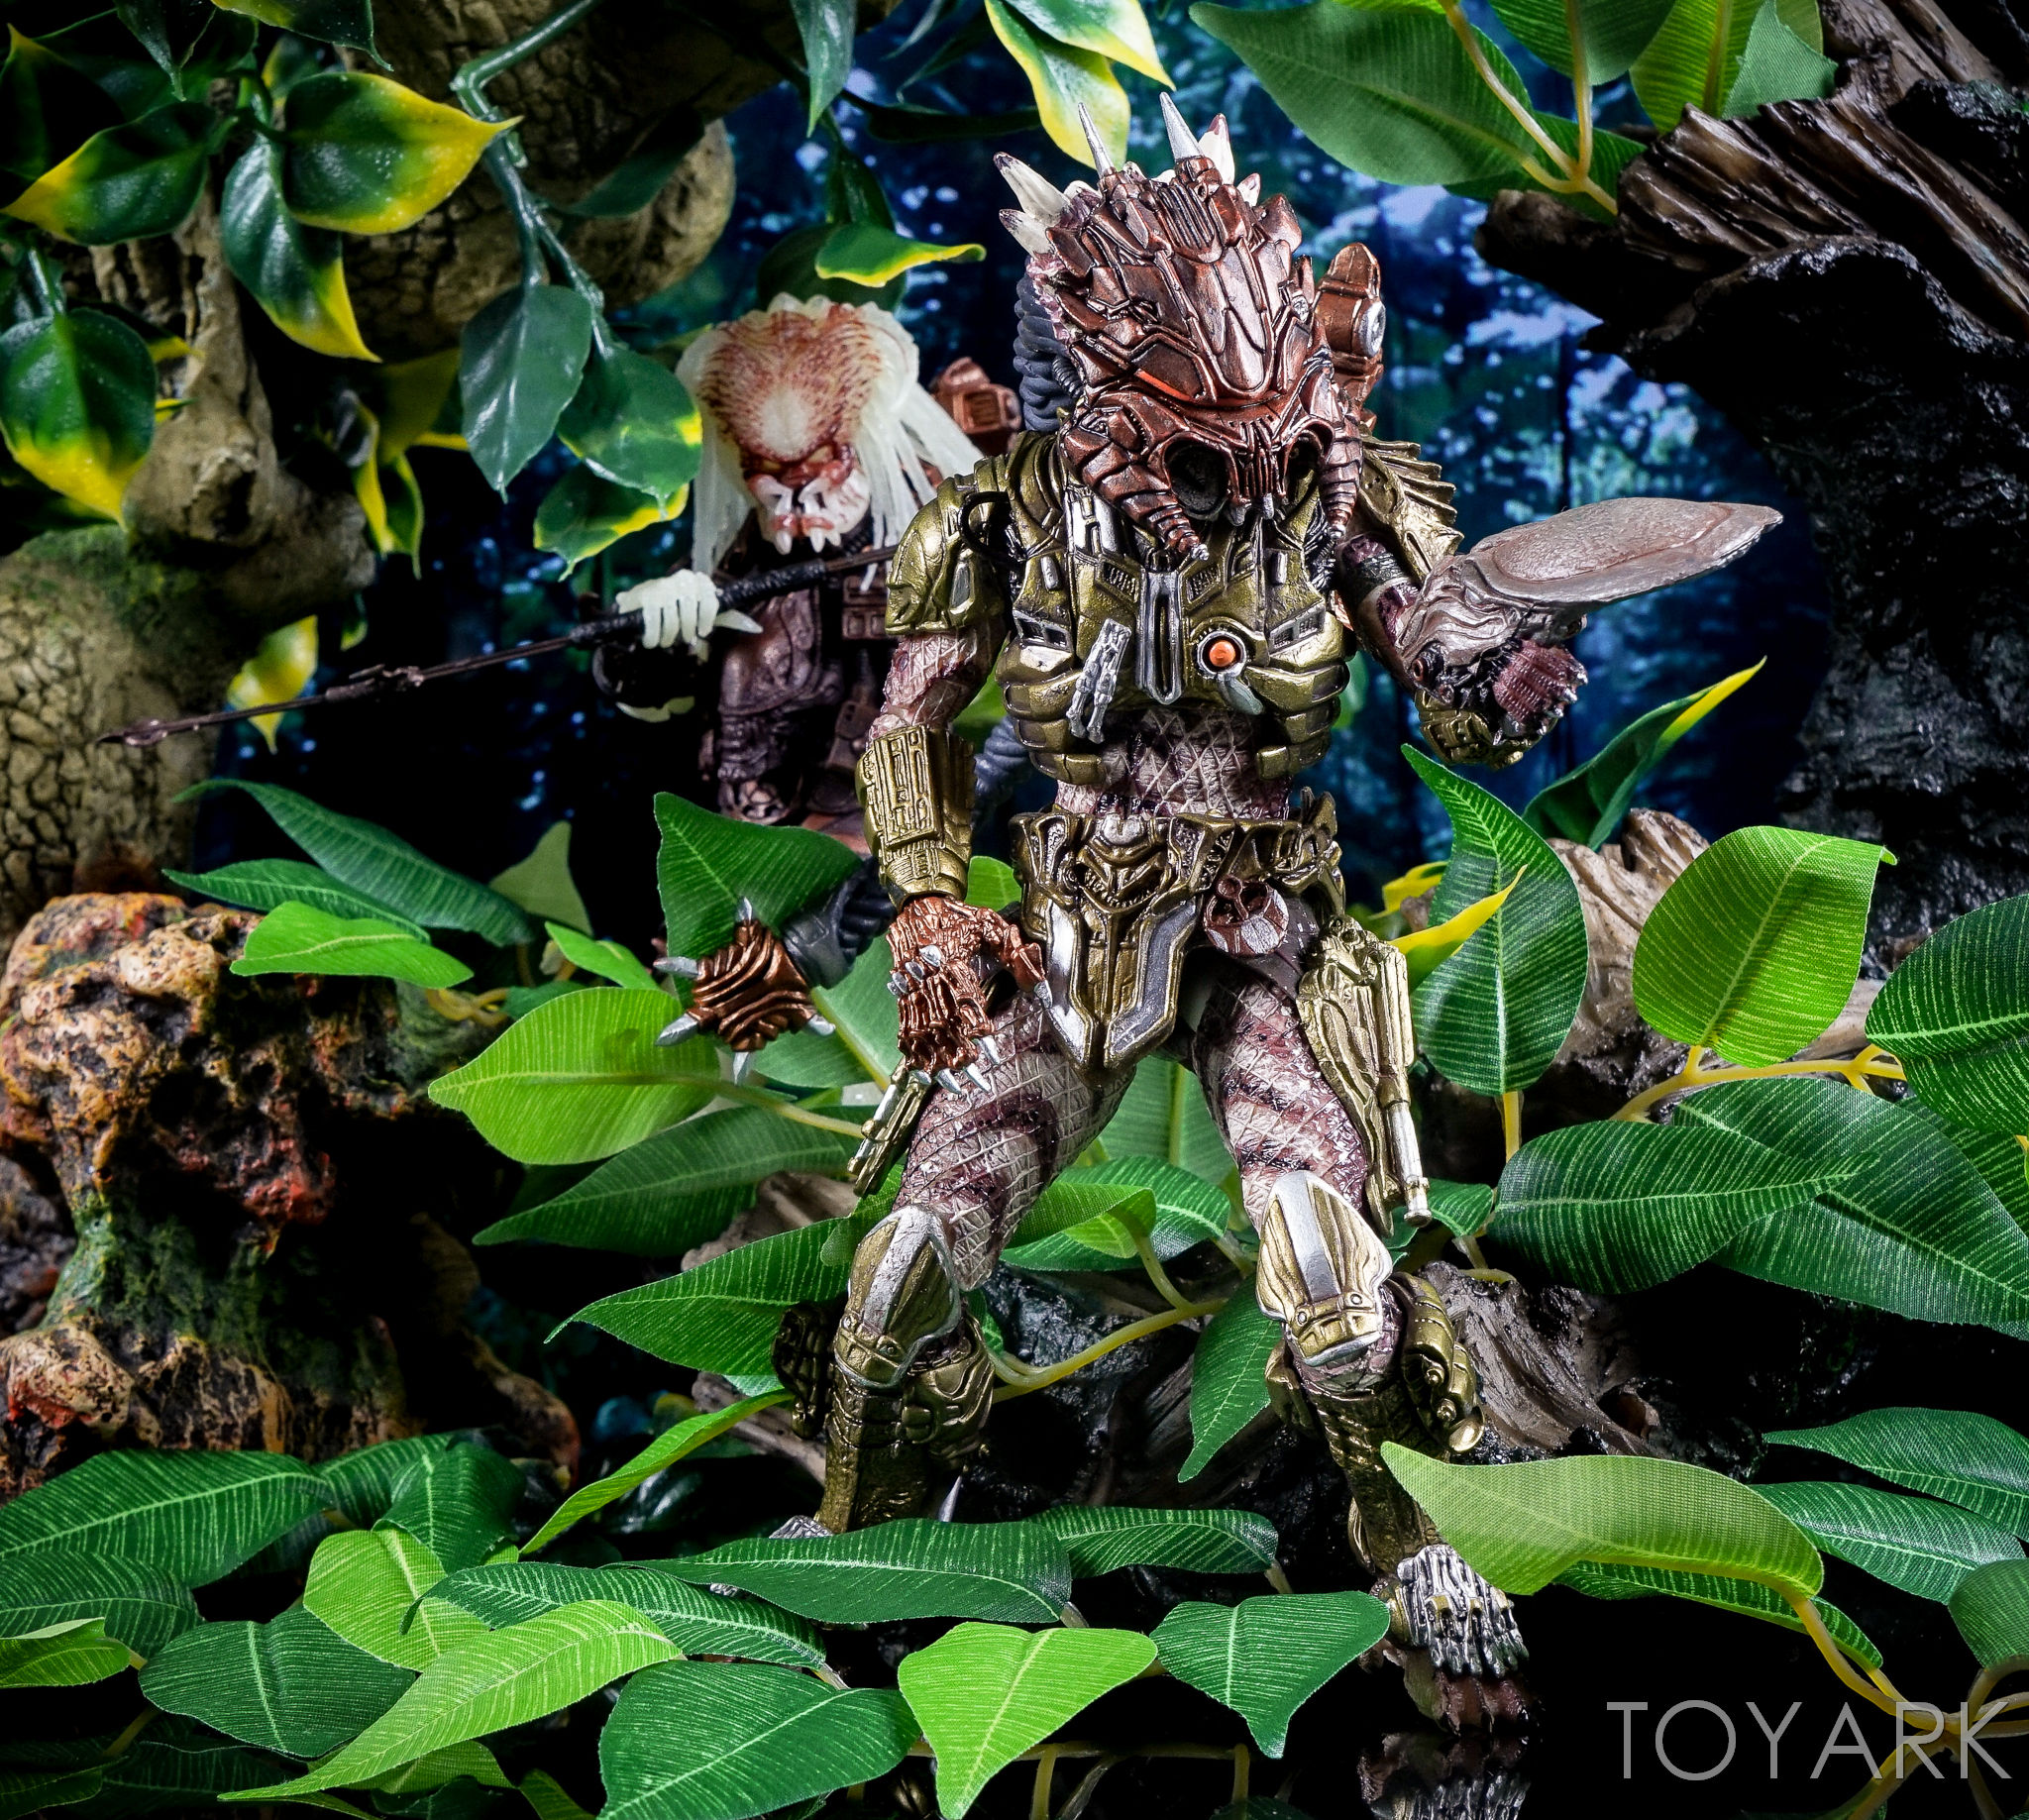 http://news.toyark.com/wp-content/uploads/sites/4/2016/10/Predator-Series-16-NECA-144.jpg